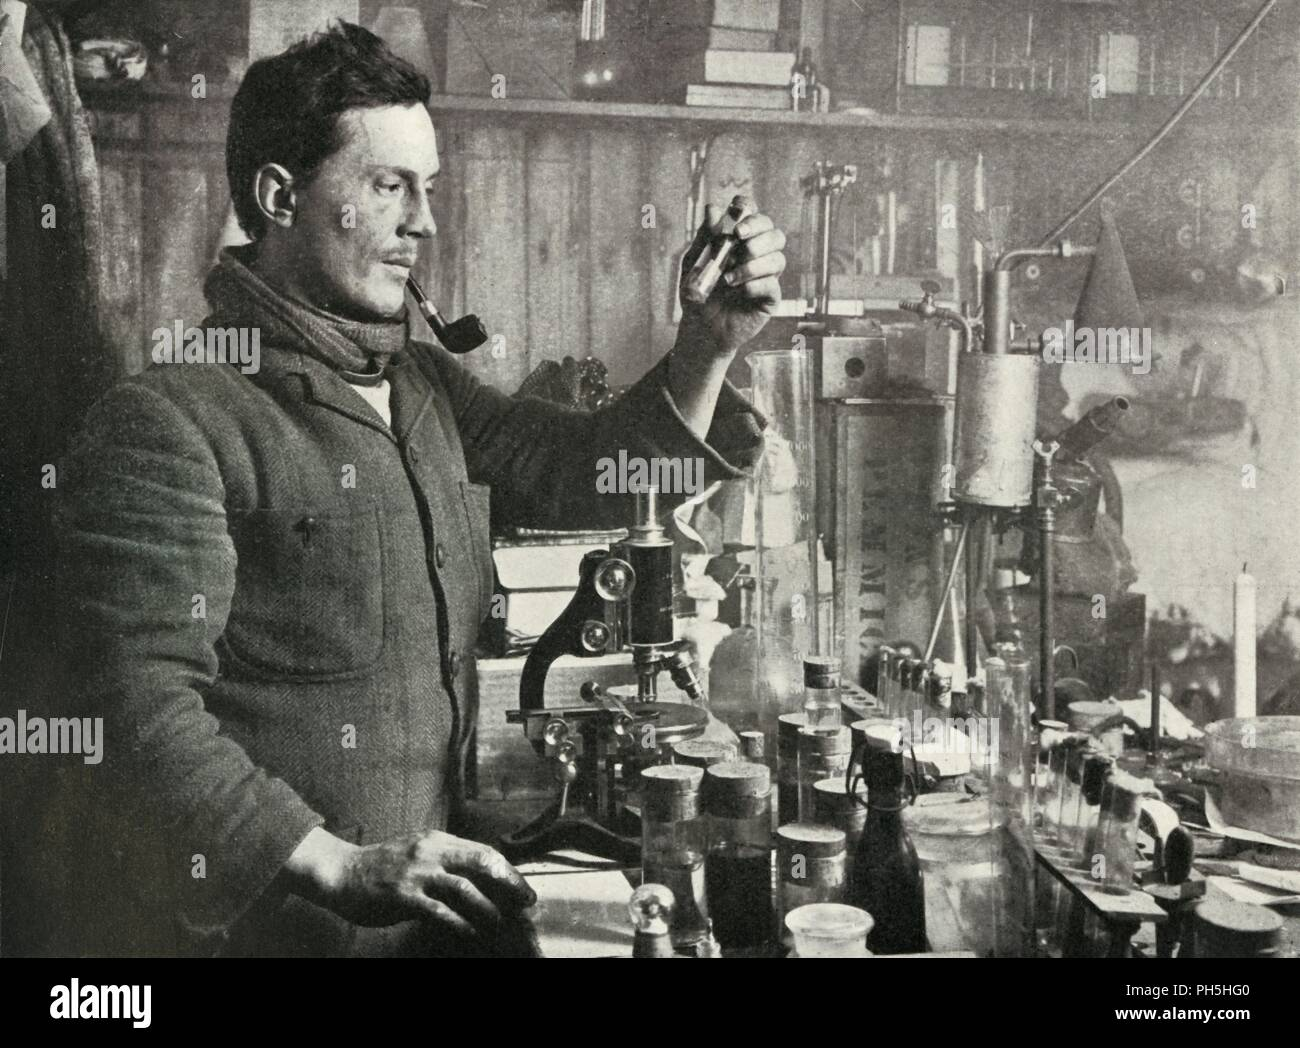 'Dr. Atkinson in his Laboratory', 15 September 1911, (1913). Surgeon and parasitologist Edward Atkinson (1881-1929) led the party which found the tent with the bodies of Scott,  Bowers and Wilson. The final expedition of British Antarctic explorer Captain Robert Falcon Scott (1868-1912) left London on 1 June 1910 bound for the South Pole. The Terra Nova Expedition, officially the British Antarctic Expedition (1910-1913), included a geologist, a zoologist, a surgeon, a photographer, an engineer, a ski expert, a meteorologist and a physicist among others. Scott wished to continue the scientific  - Stock Image